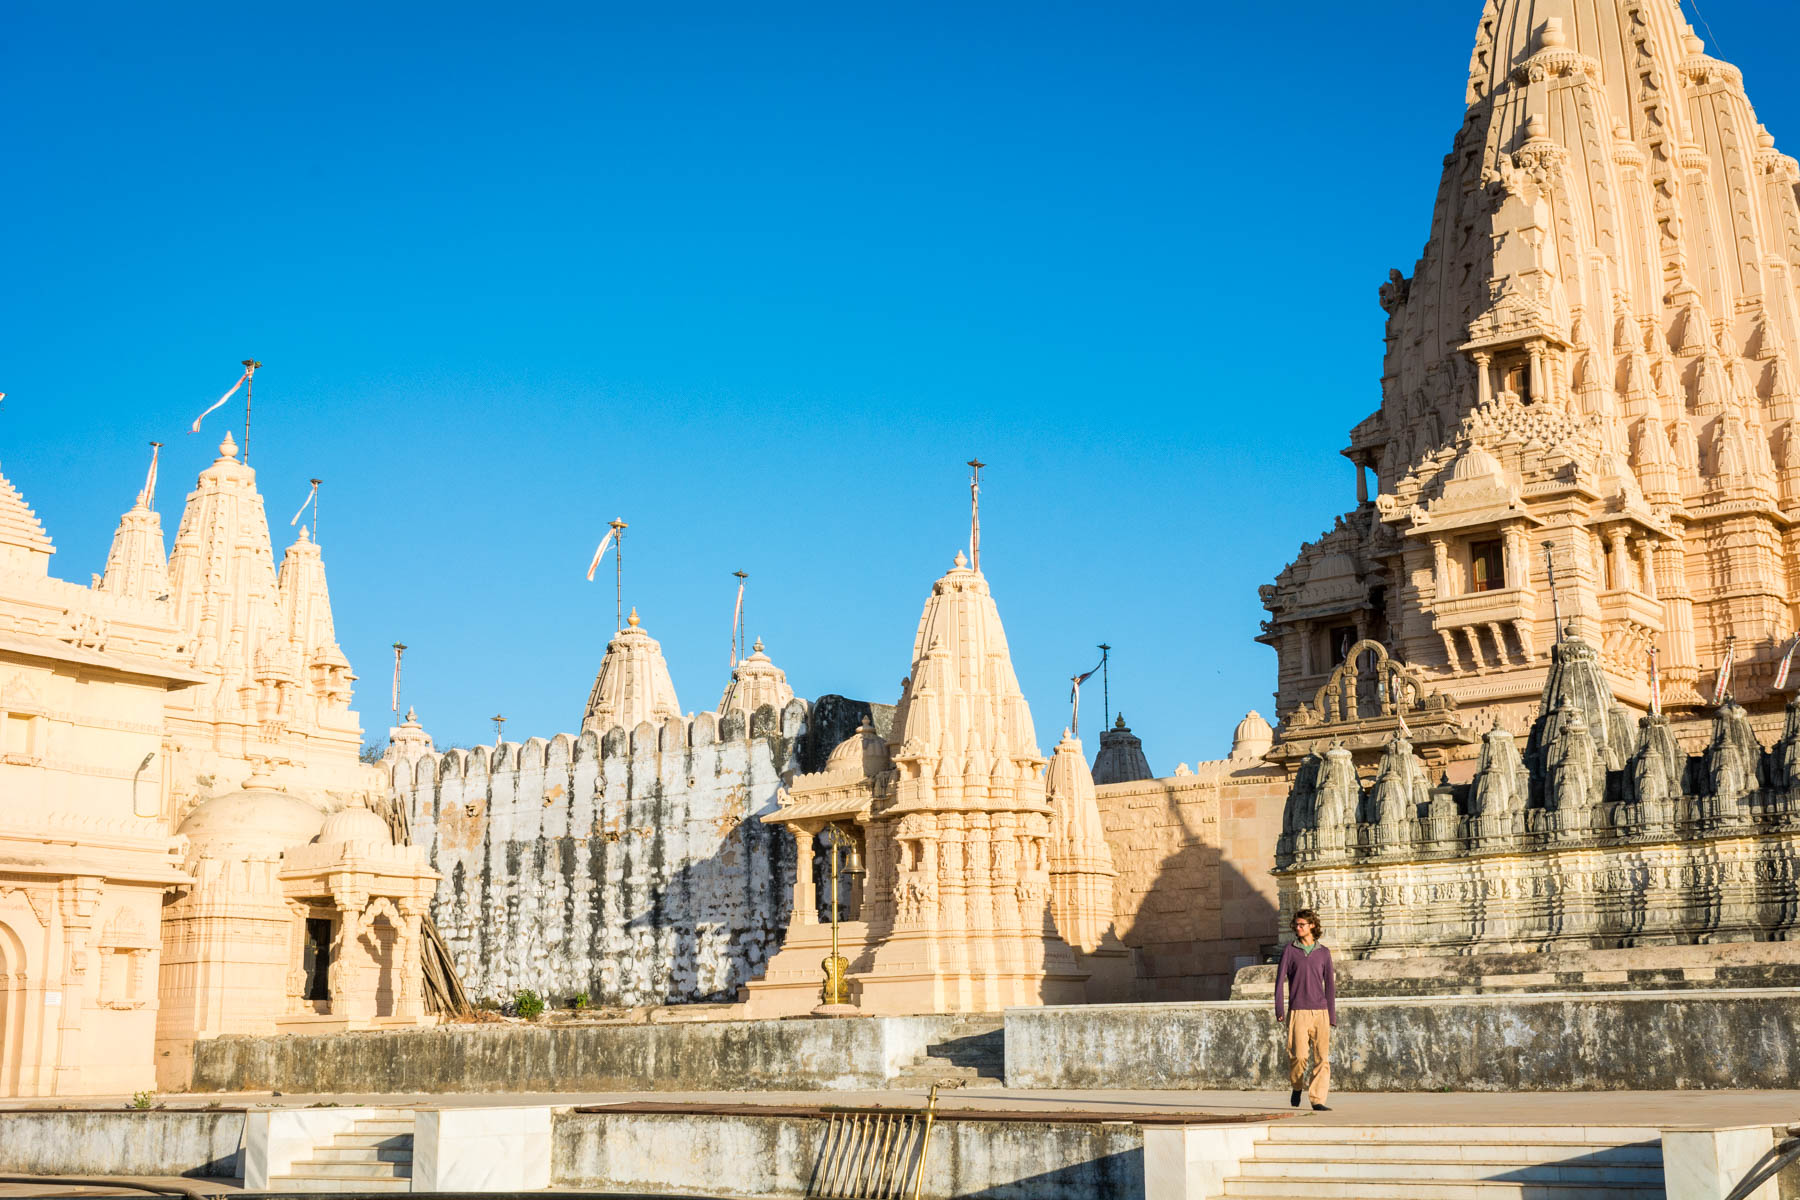 Jain pilgrimage in Palitana, India - Walking through the Palitana temples - Lost With Purpose